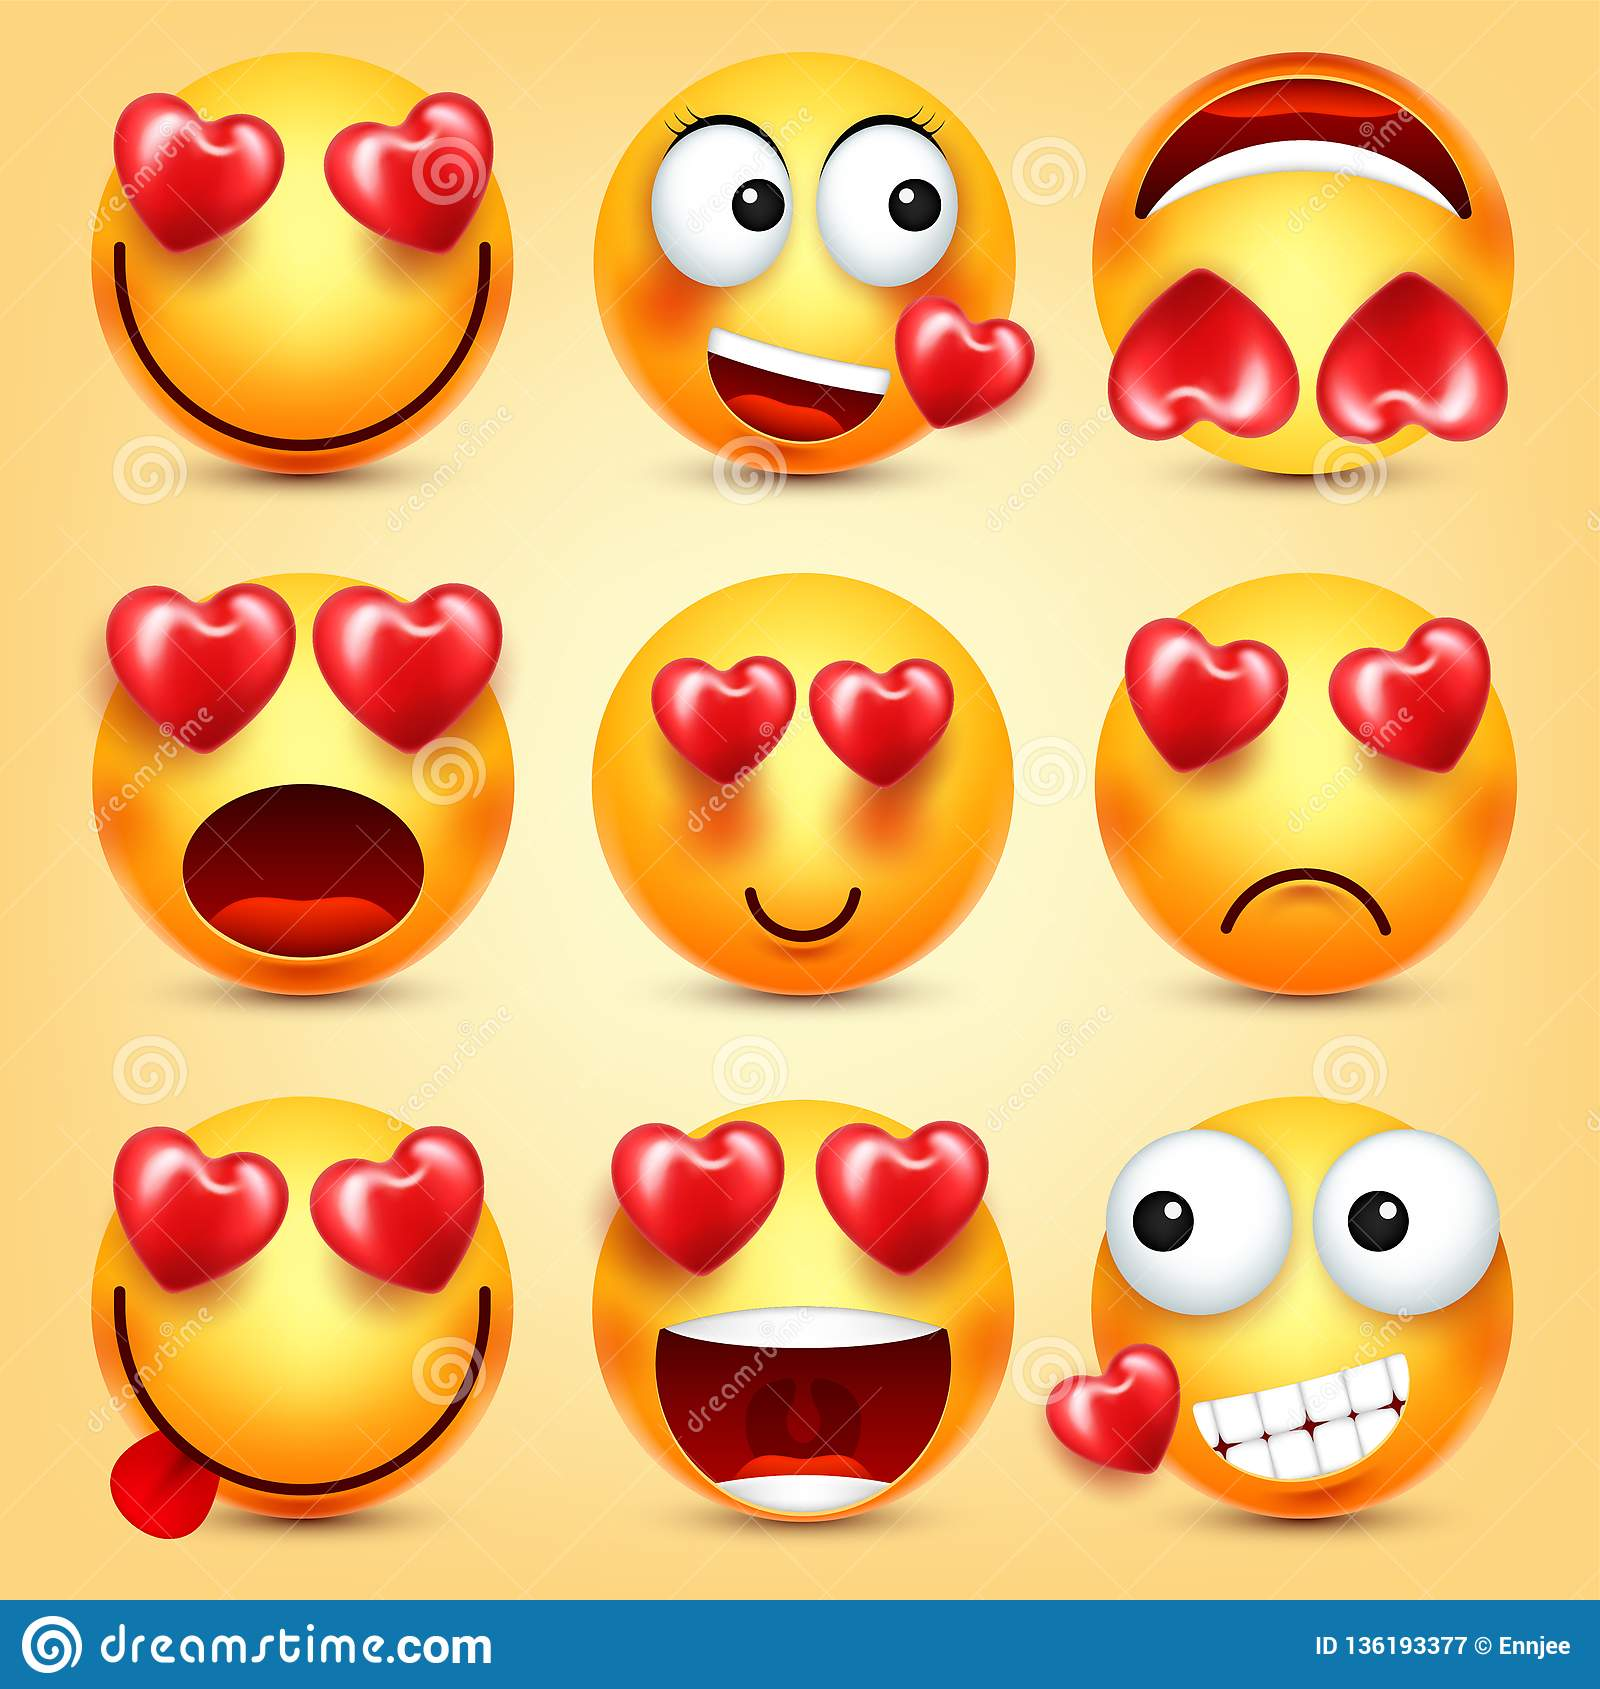 Emoji Smiley With Red Heart Vector Set Valentines Day Yellow Cartoon Emoticons Face Love